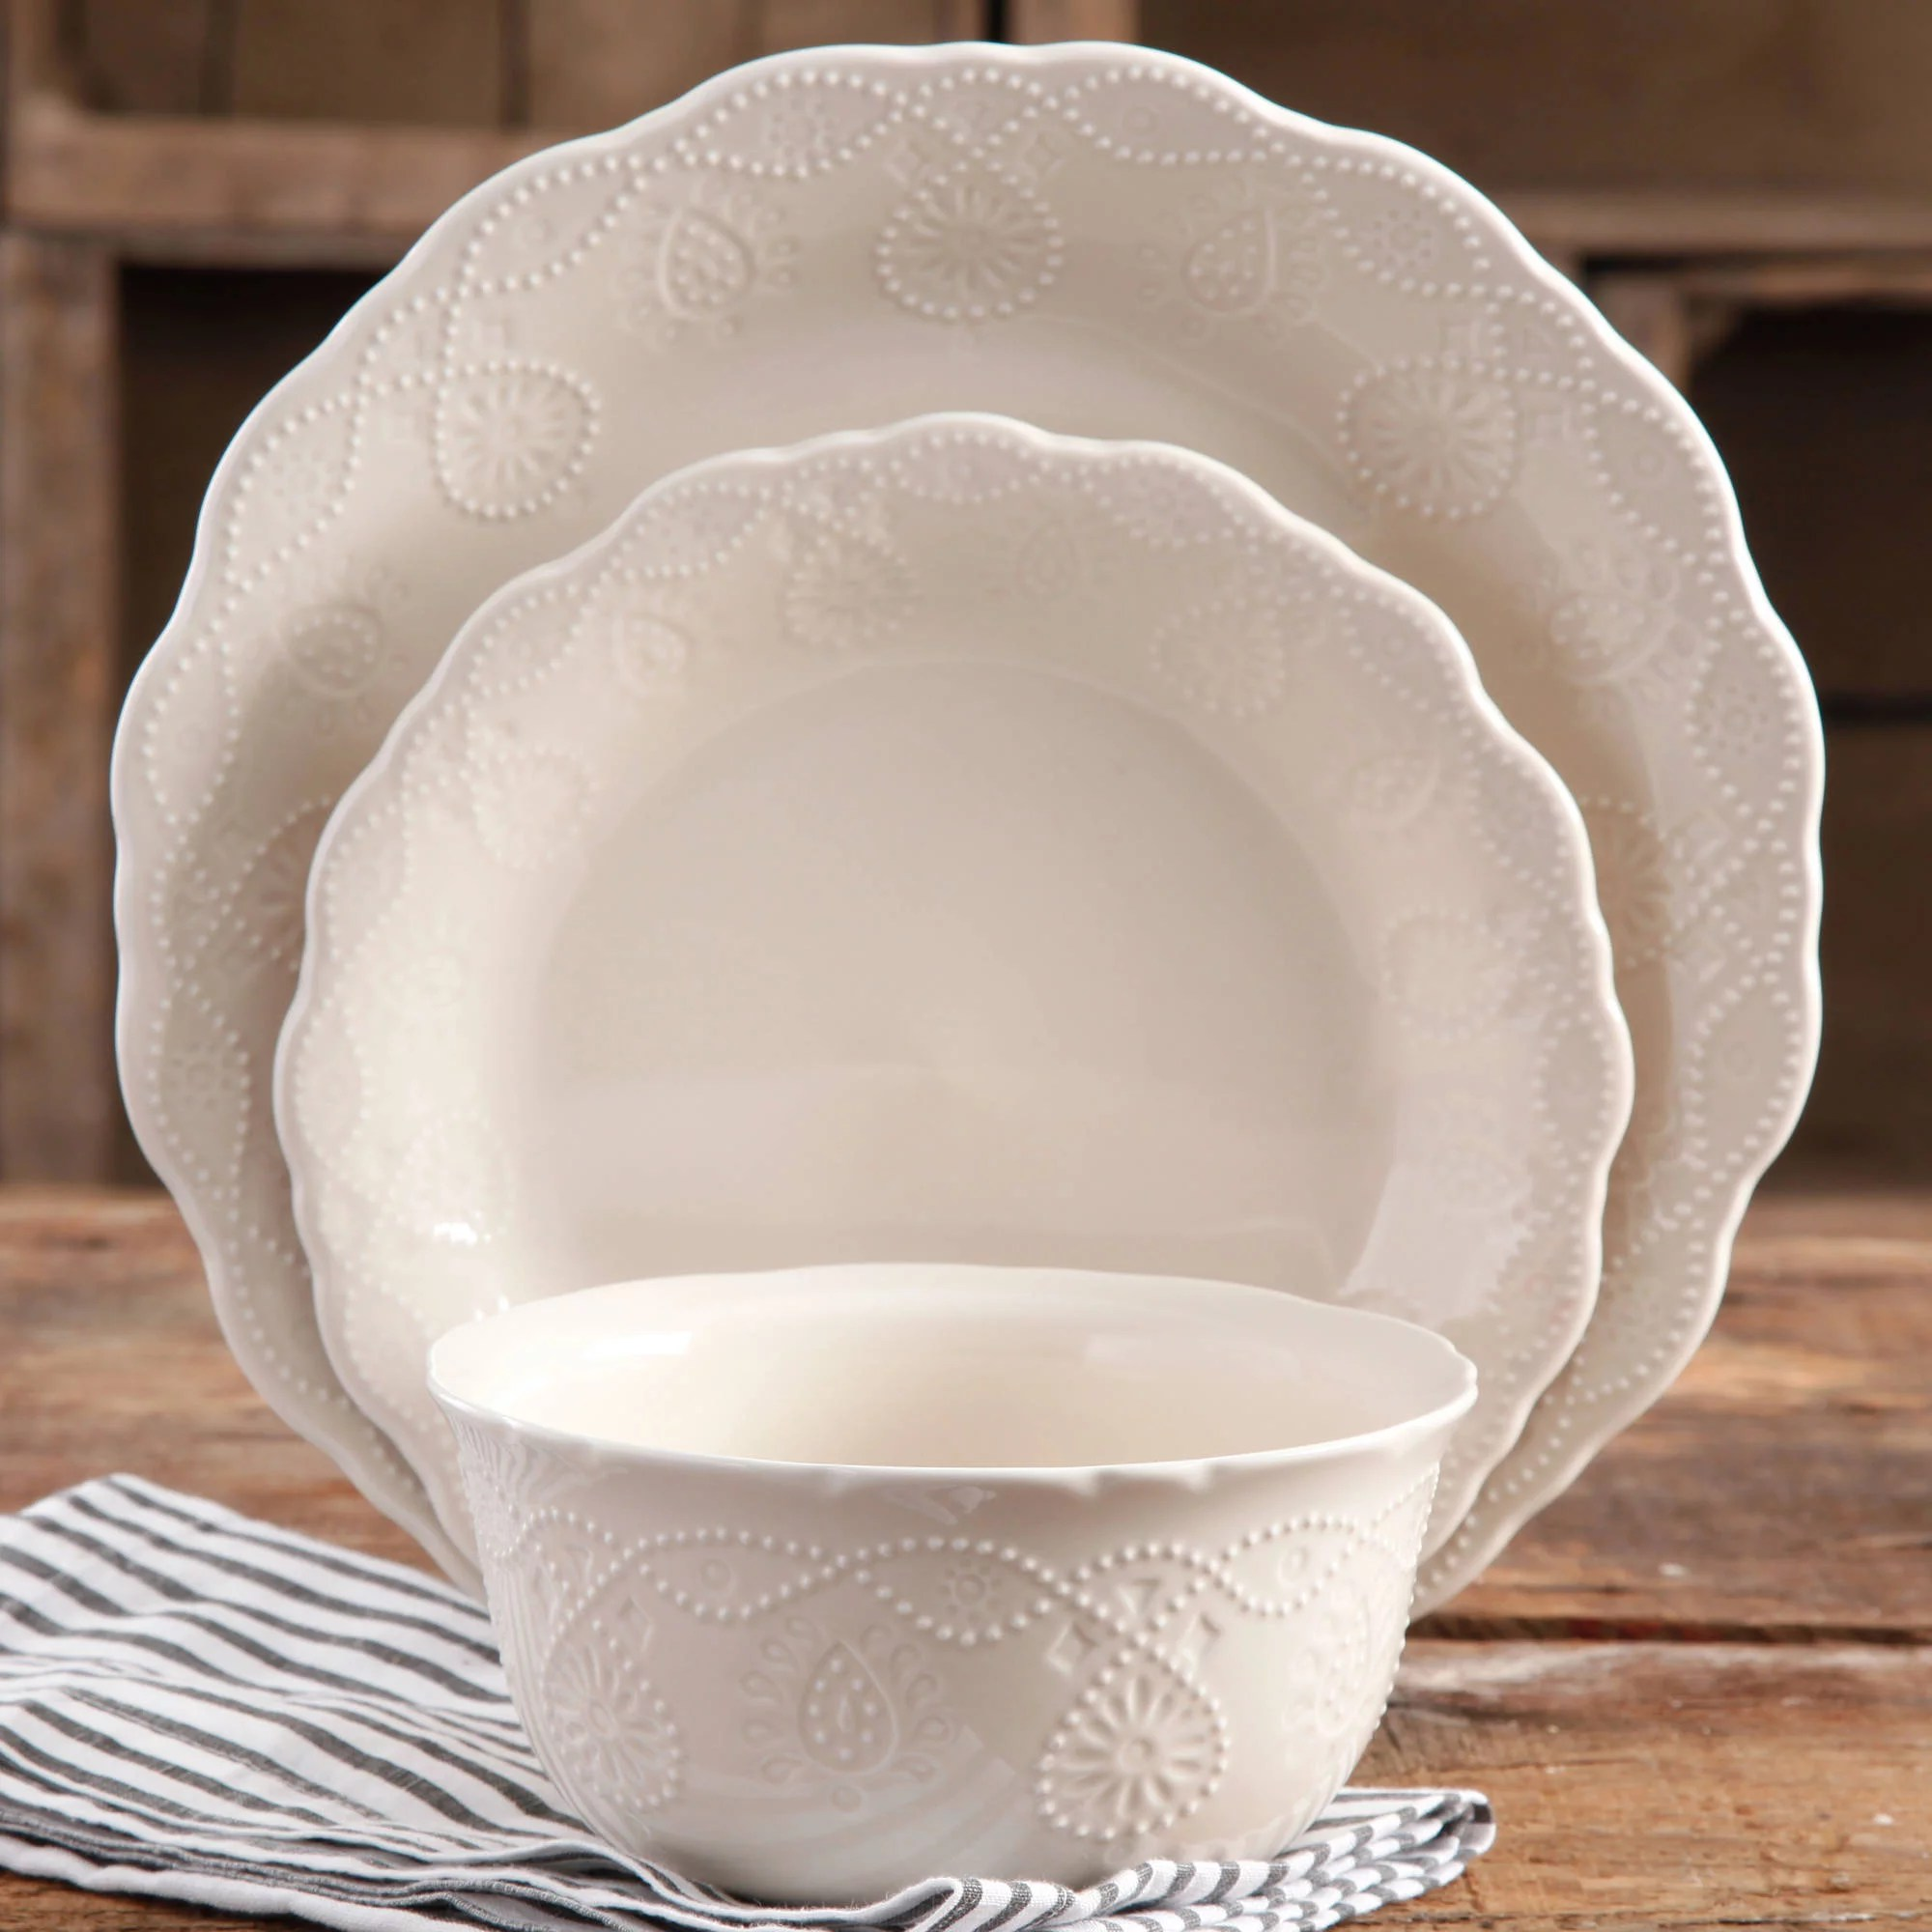 The Pioneer Woman Cowgirl Lace 12 Pc Dinnerware Set White